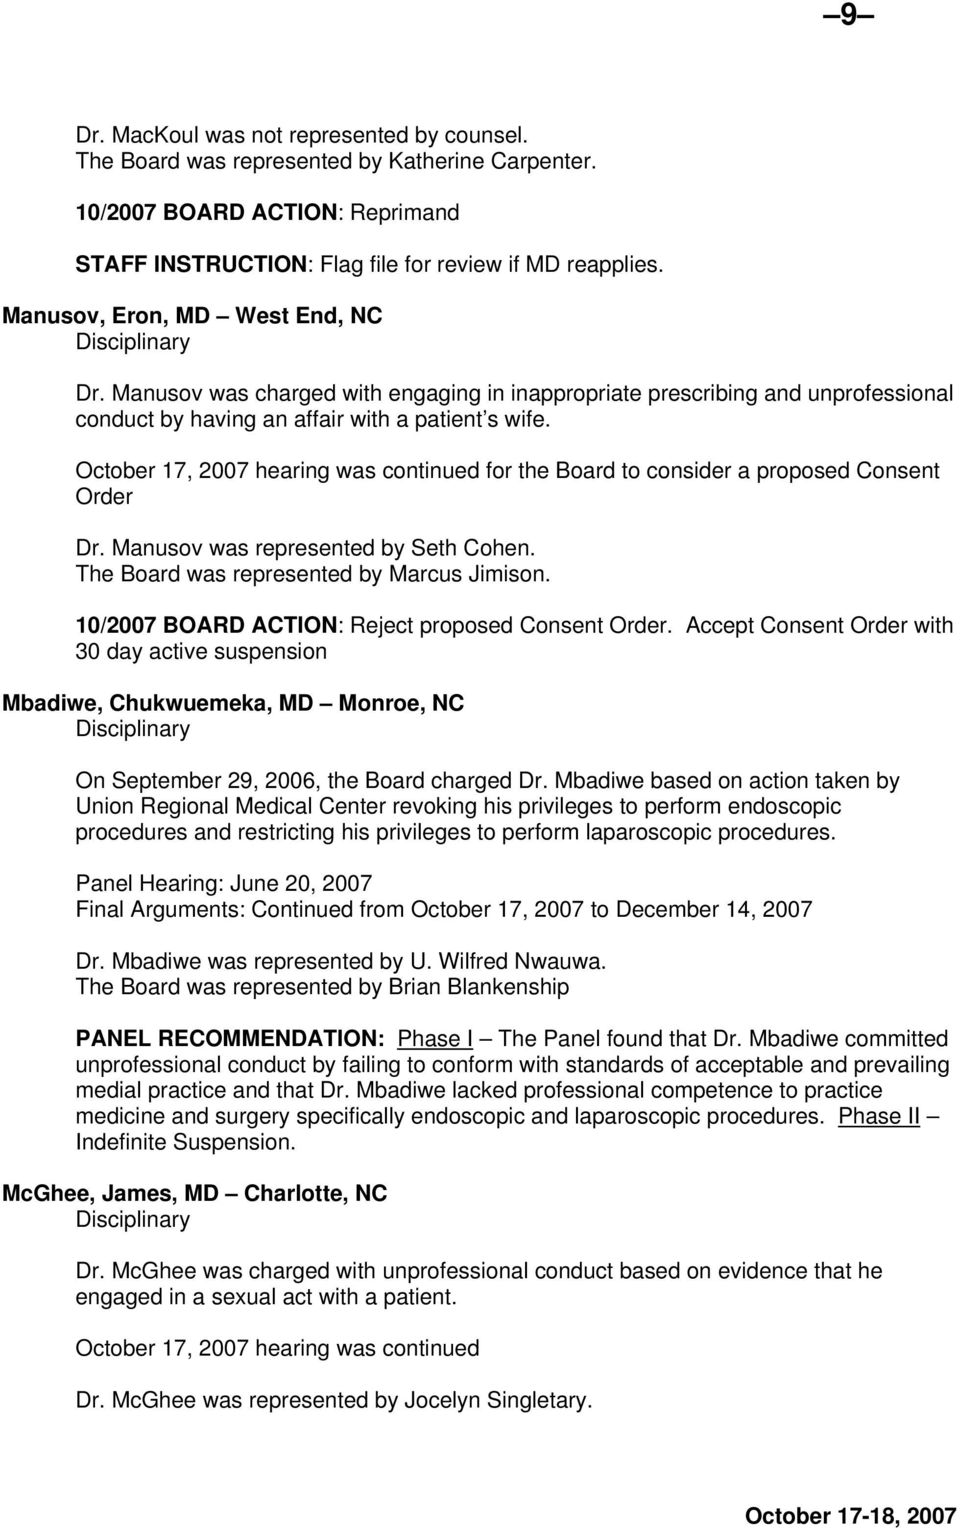 October 17, 2007 hearing was continued for the Board to consider a proposed Consent Order Dr. Manusov was represented by Seth Cohen. The Board was represented by Marcus Jimison.